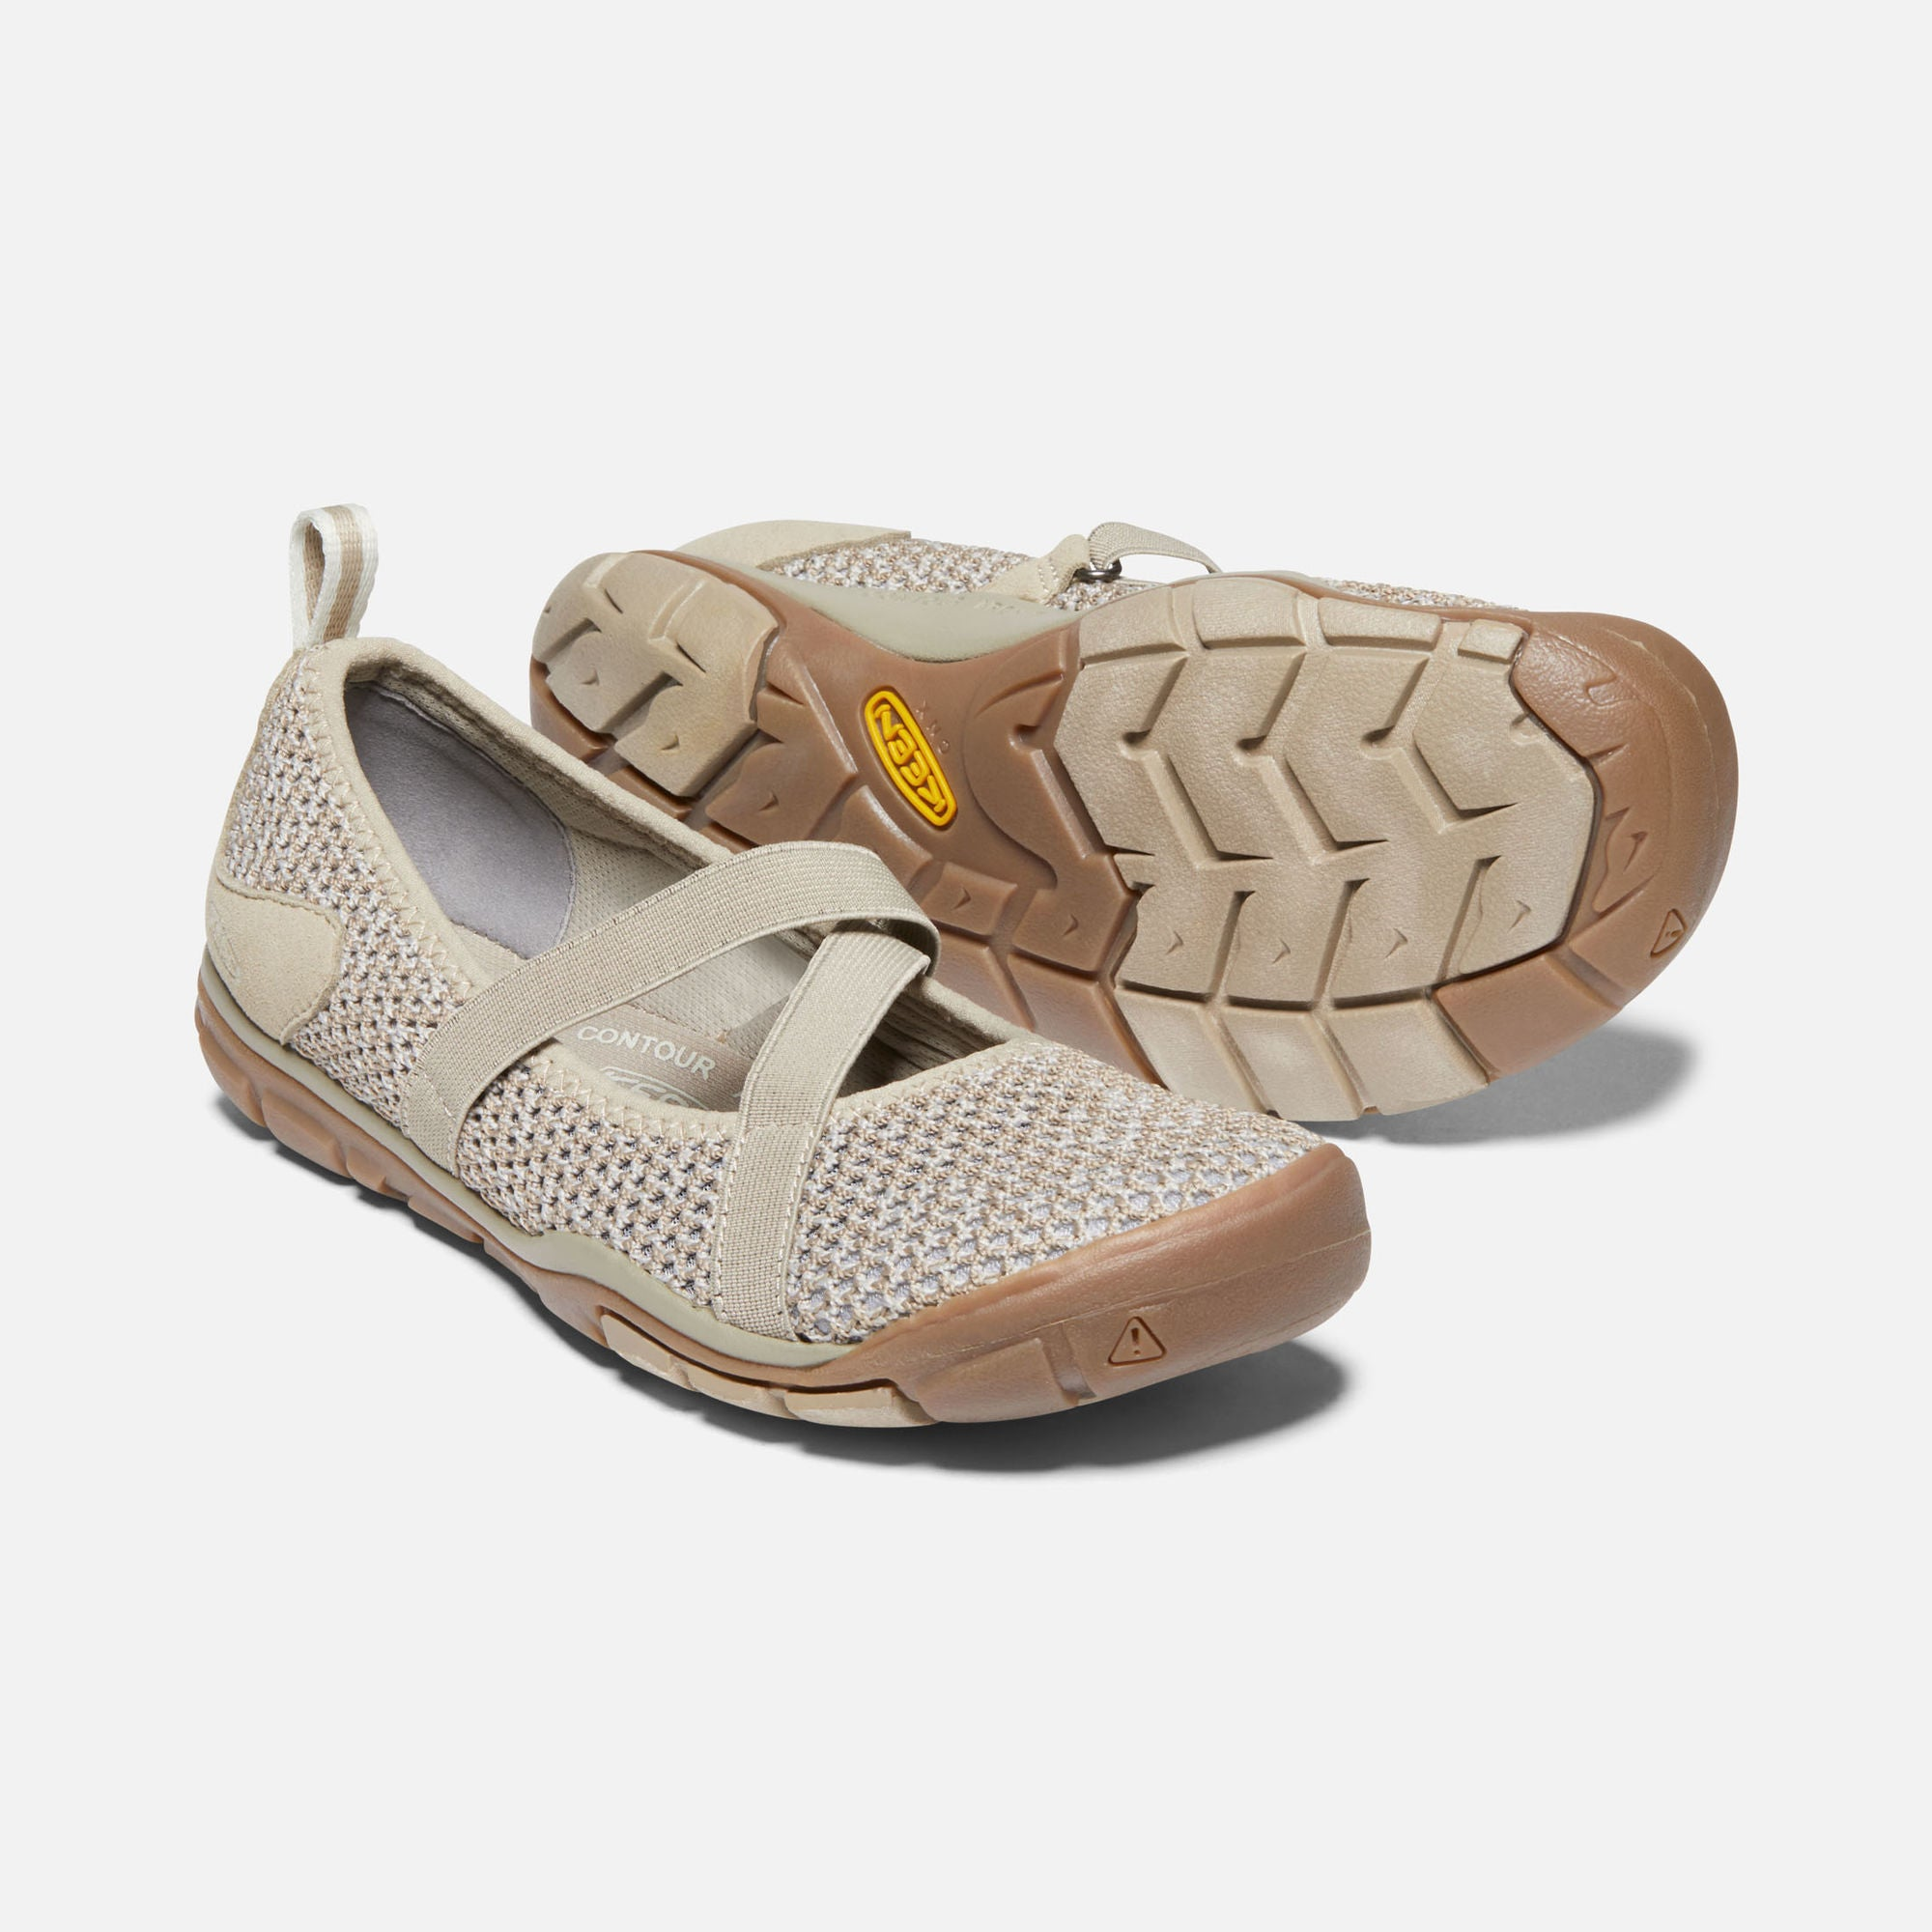 559d941390bc Women s Keen Hush Knit Mary Jane CNX-PlazaTaupe SilverBirch ...